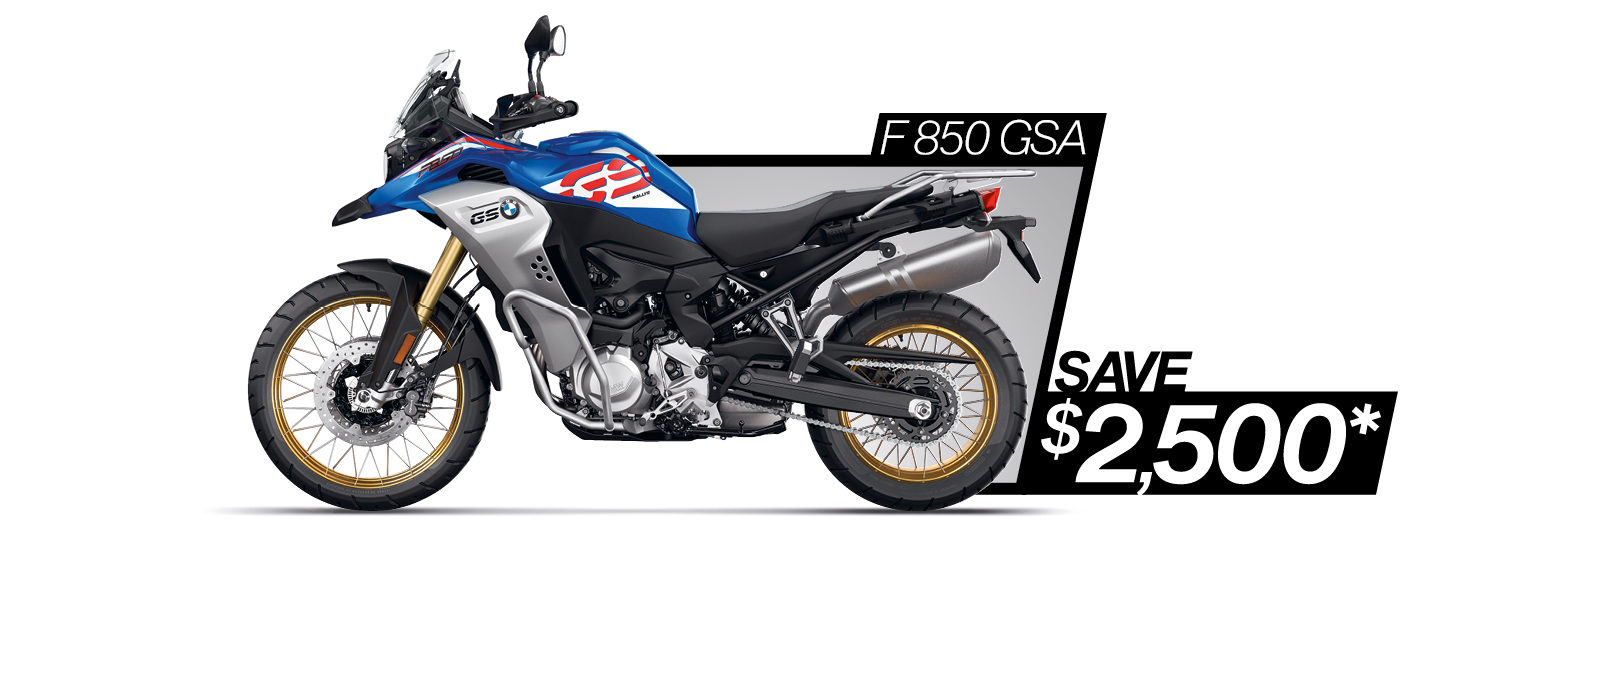 F 850 GSA on sale